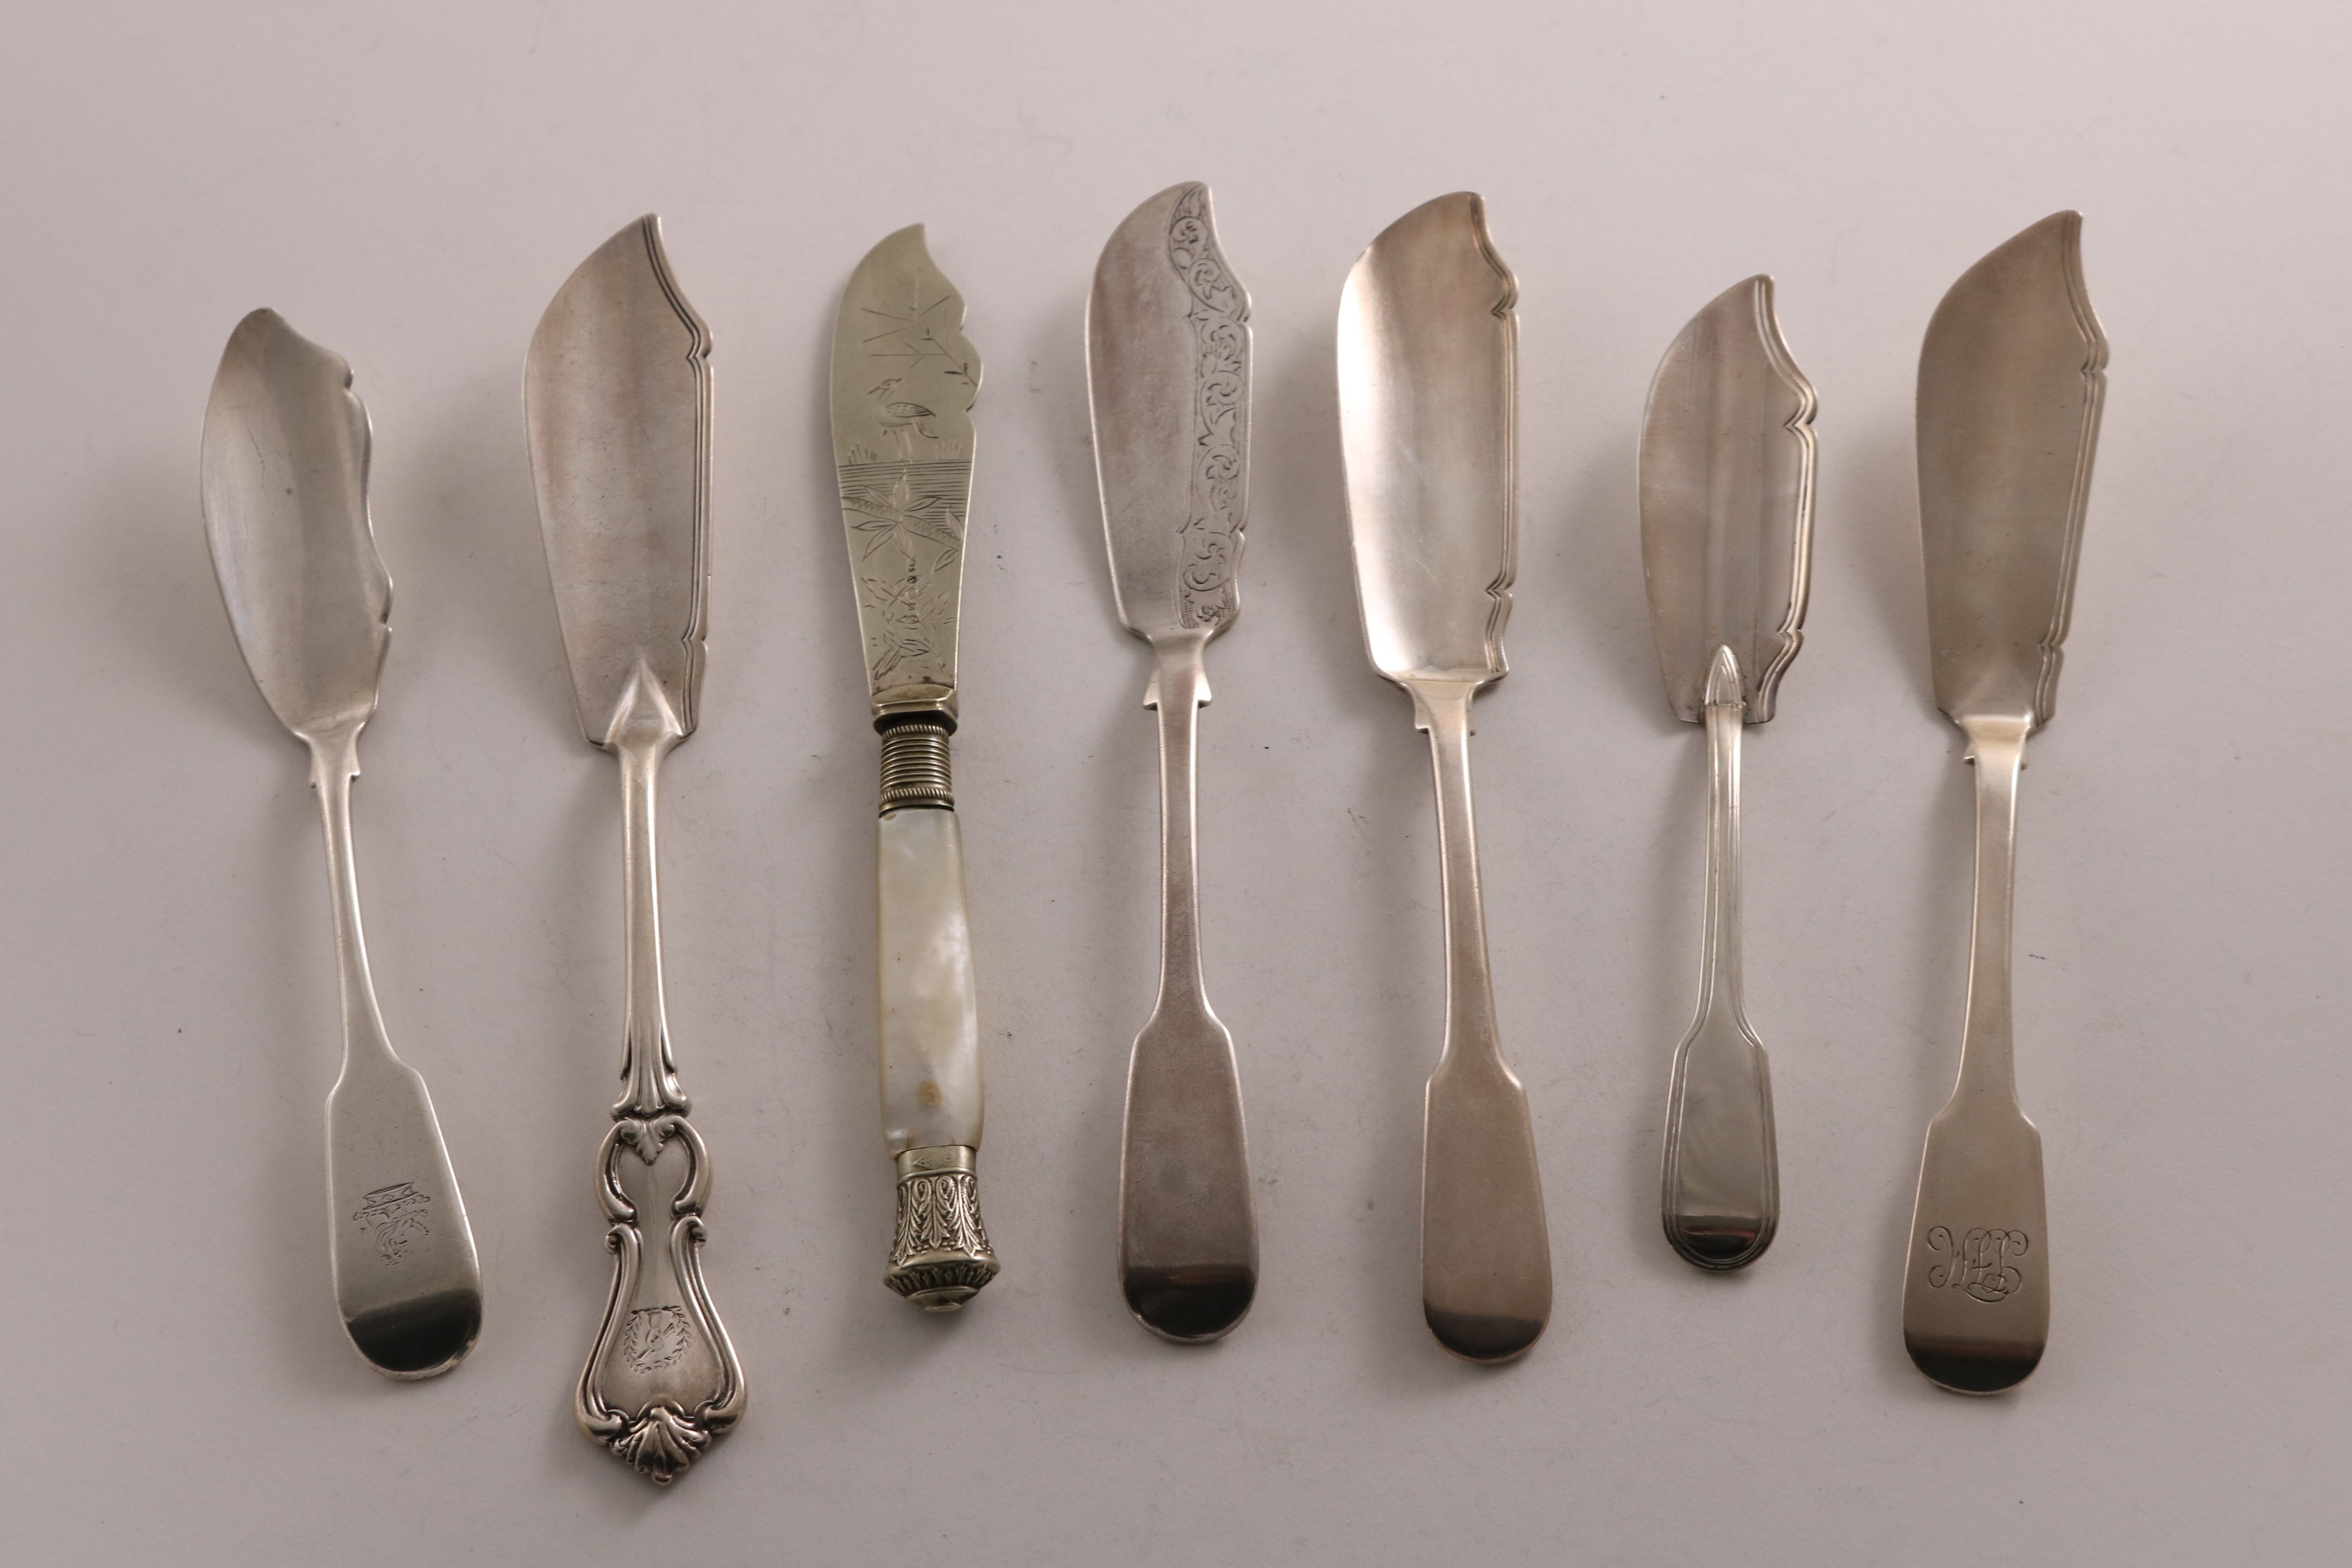 Lot 59 - BUTTER KNIVES:- A George III silver Fiddle pattern example by Paul Storr, London 1816, a Canadian